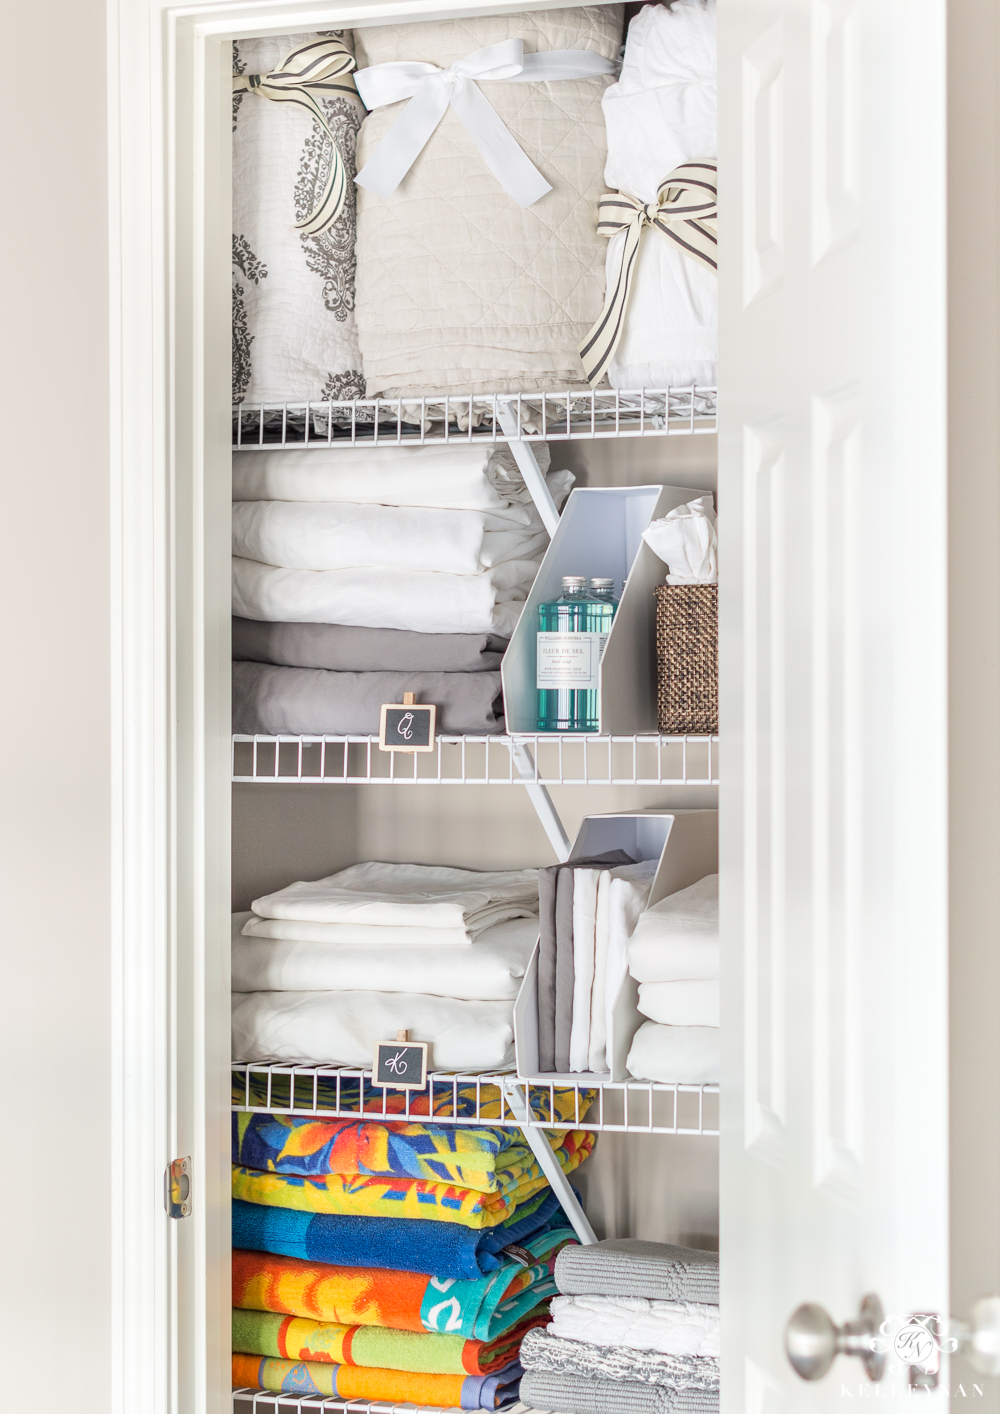 Hallway linen closet organization with comforters and bedding and beach towels